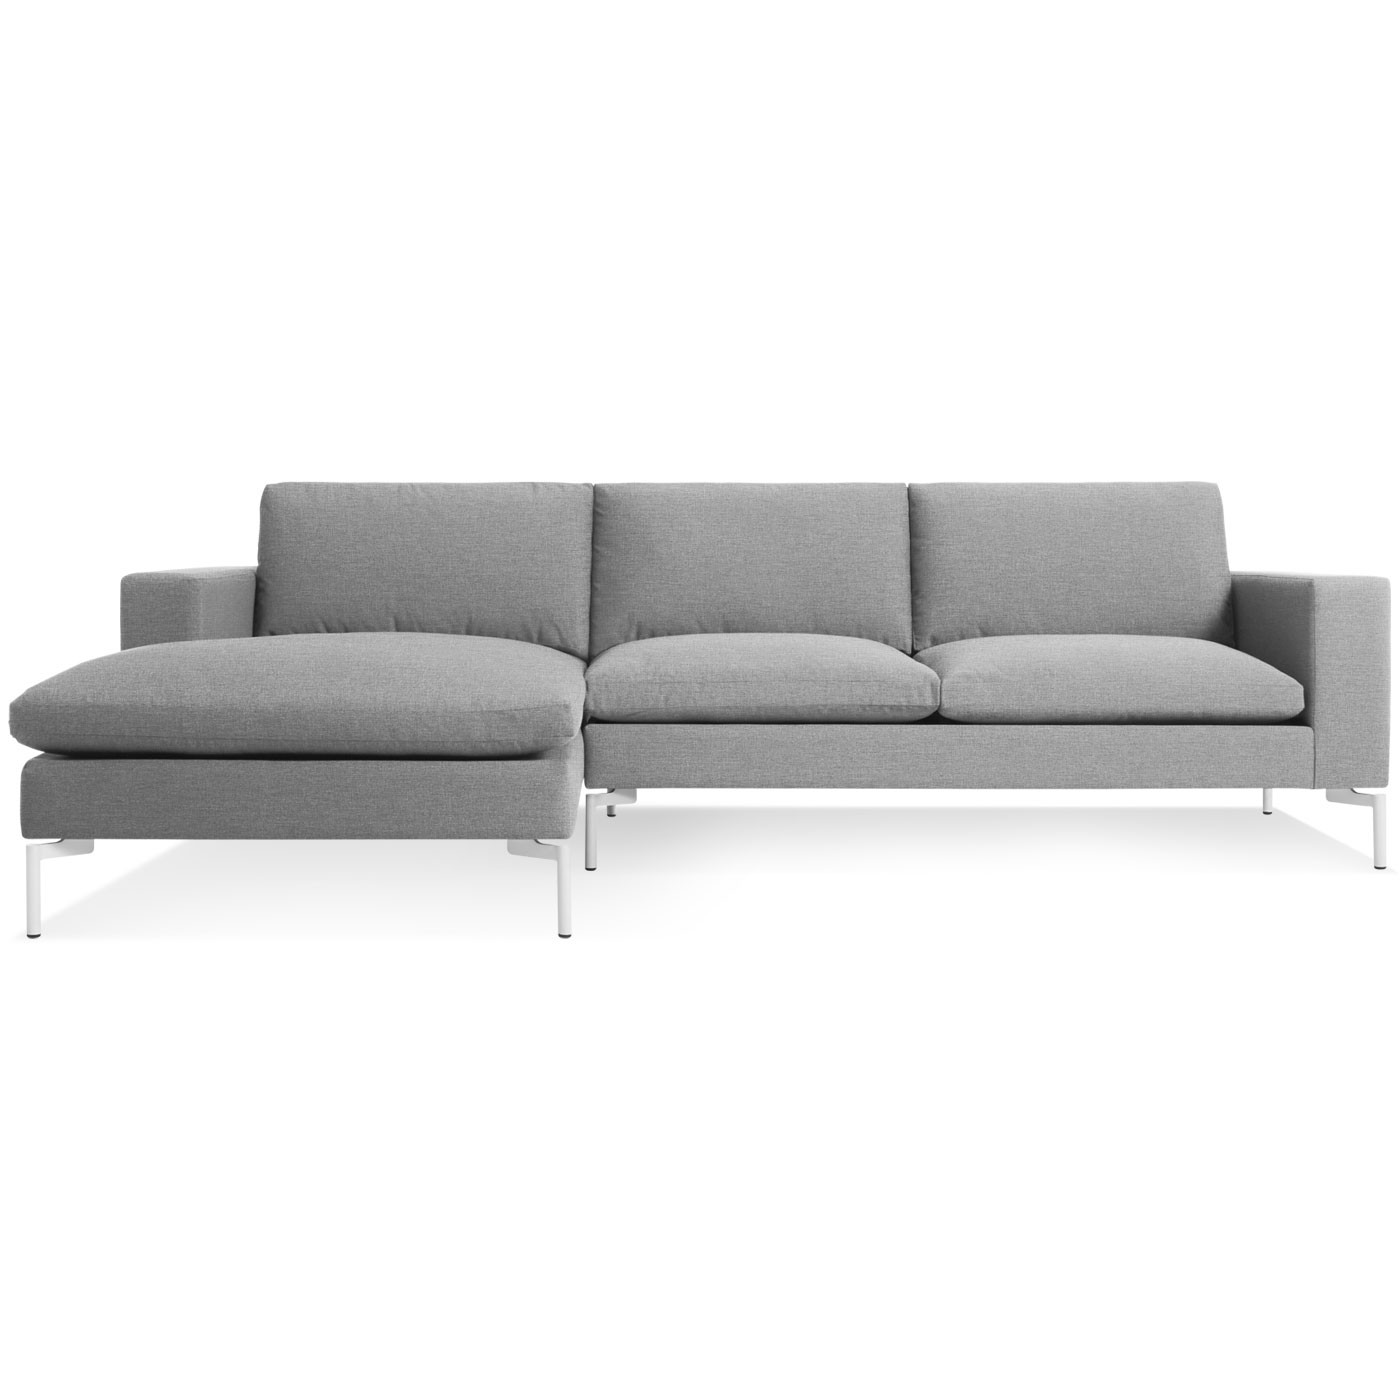 Standard Sofa With Chaise By Blu Dot